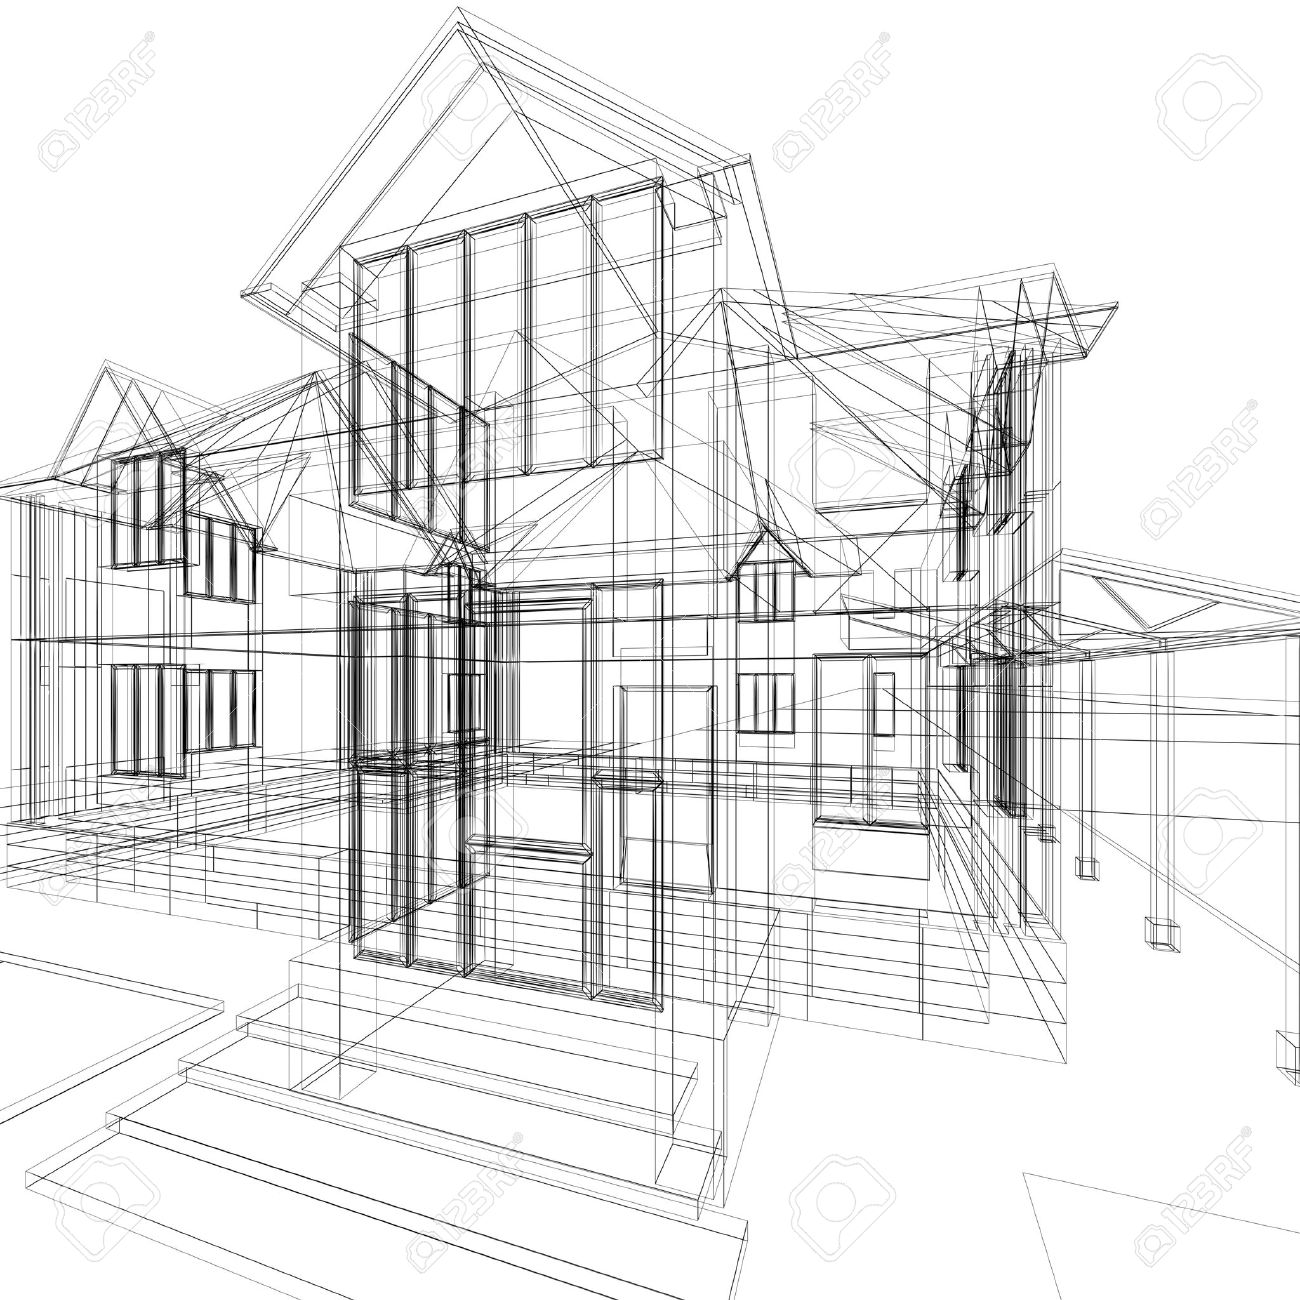 Abstract Sketch Of House. 3d Architecture Illustration. Stock Illustration    9919555